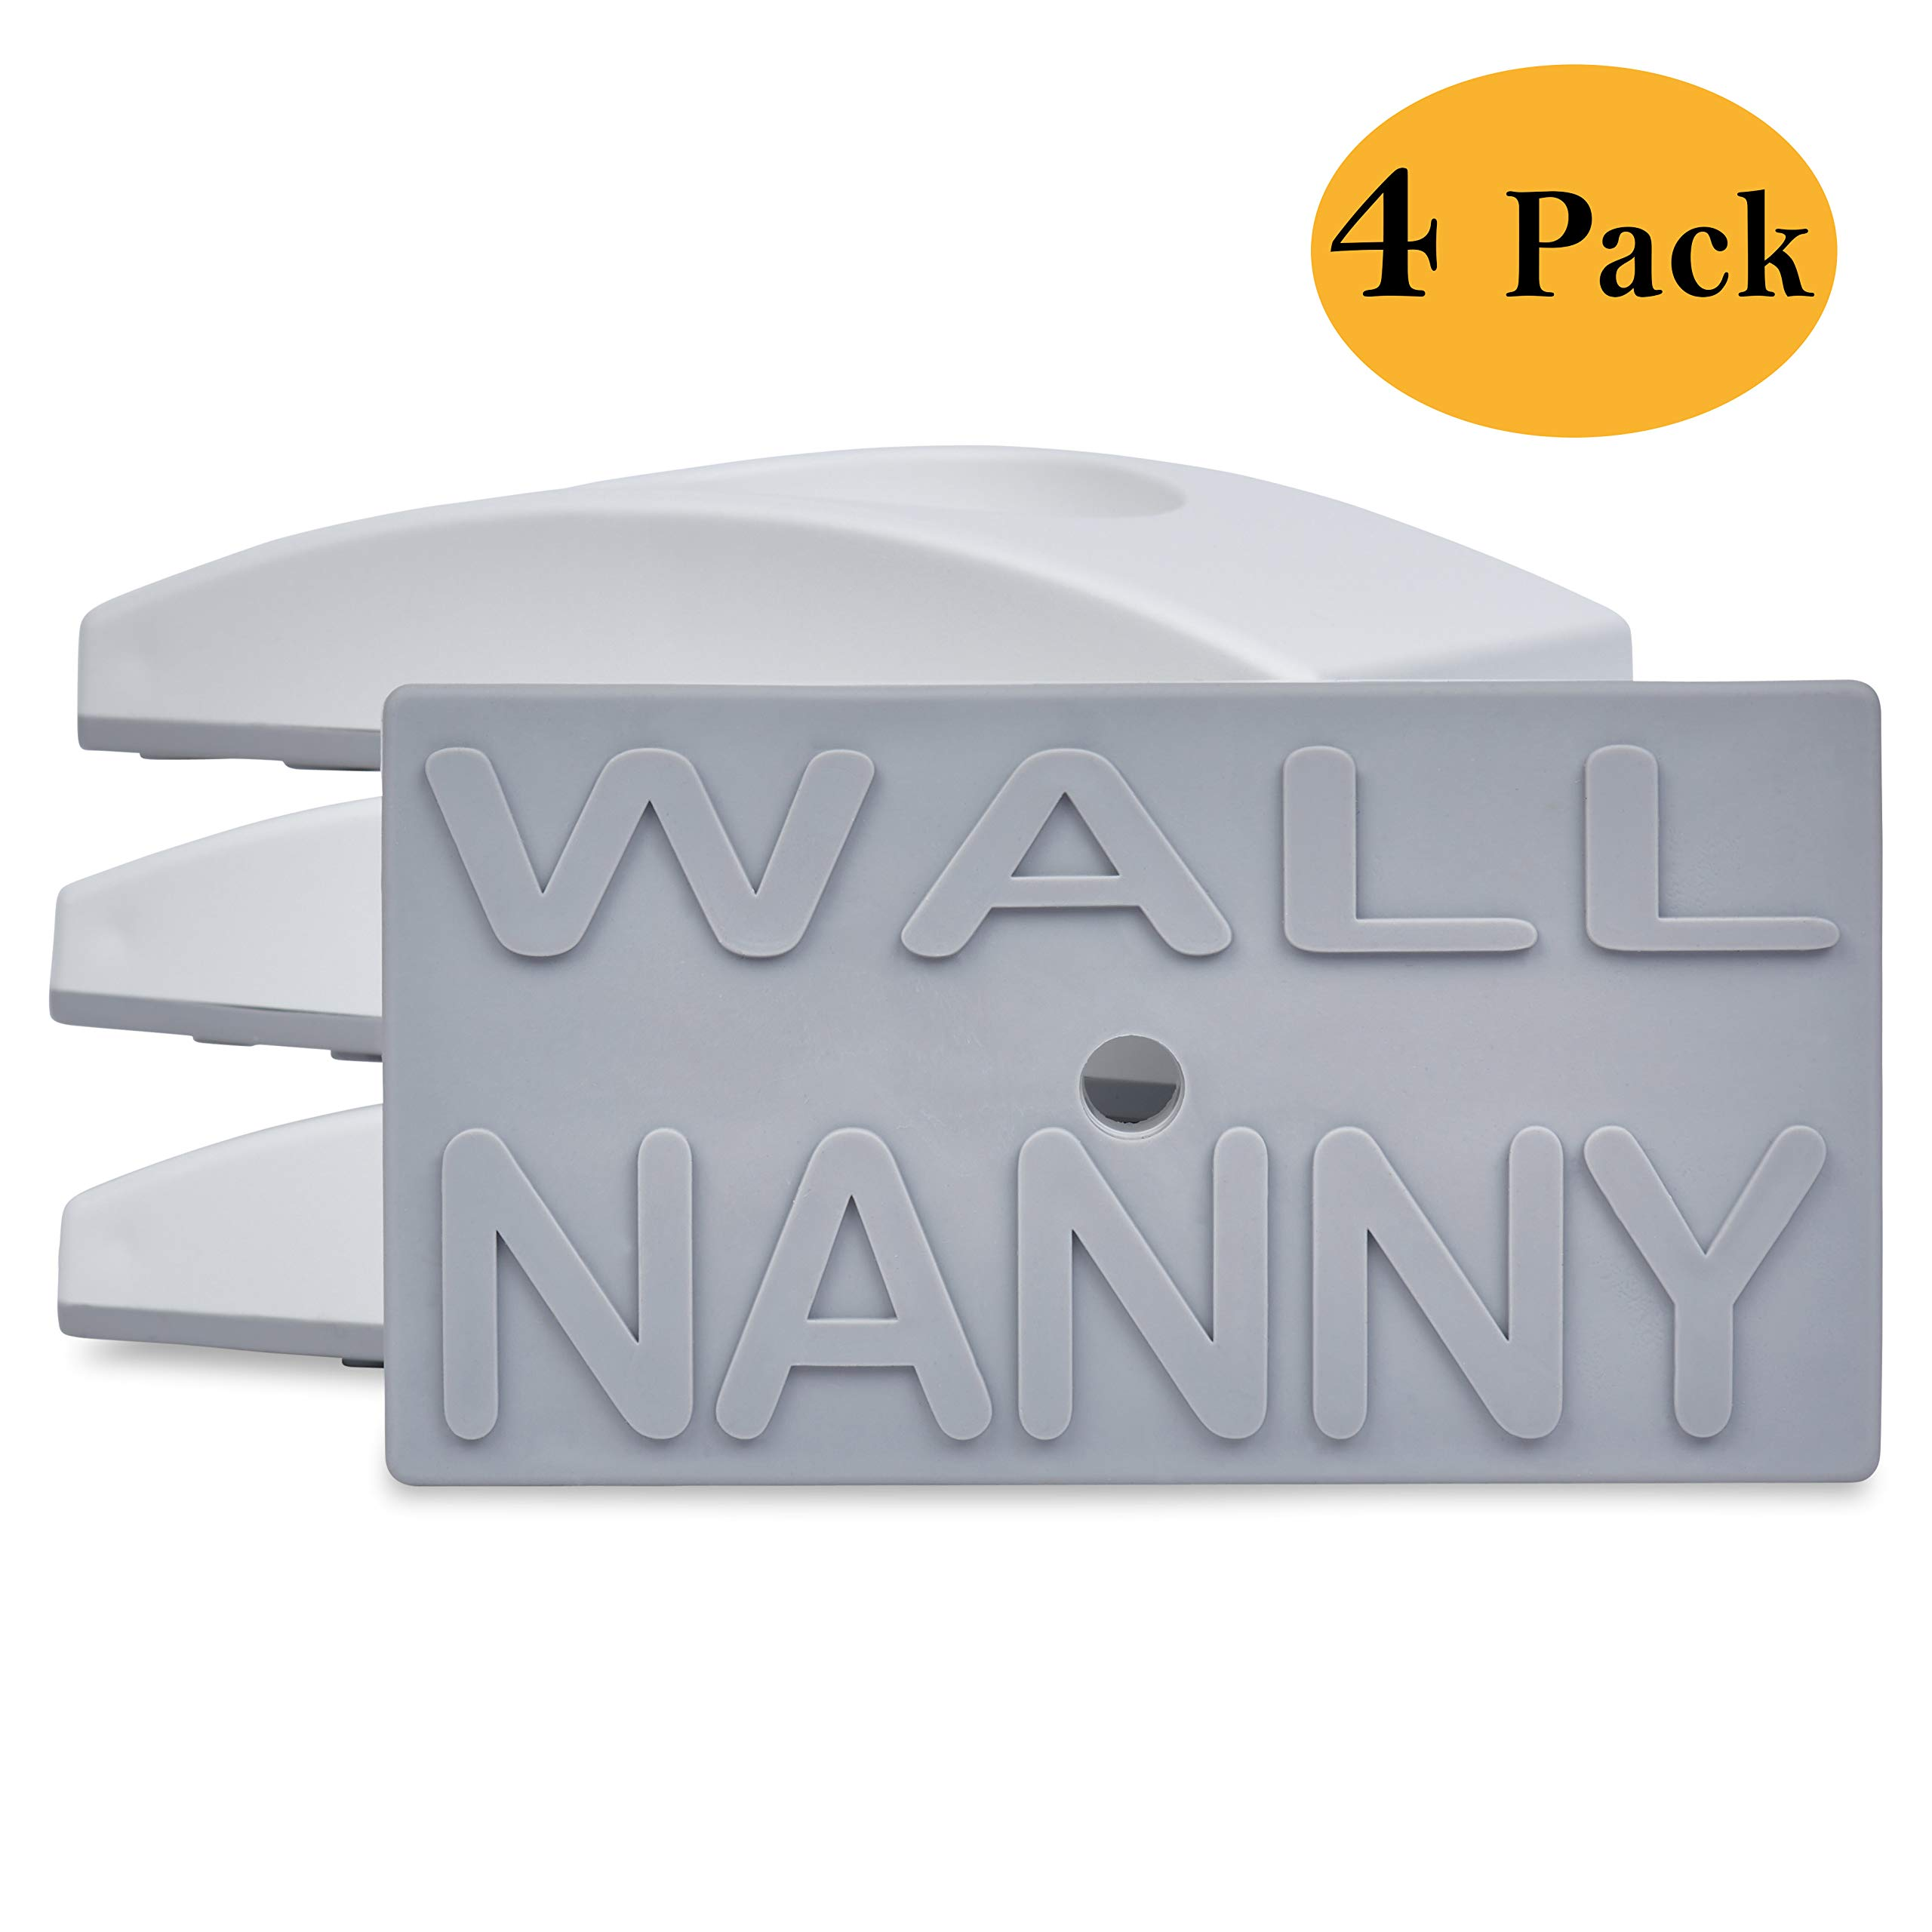 Wall Nanny - Baby Gate Wall Protector (Made in USA) Protect Walls & Doorways from Pet & Dog Gates - for Child Pressure Mounted Stair Safety Gate - No Safety Hazard on Bottom Spindles - Saver - 4 Pack by Wall Nanny